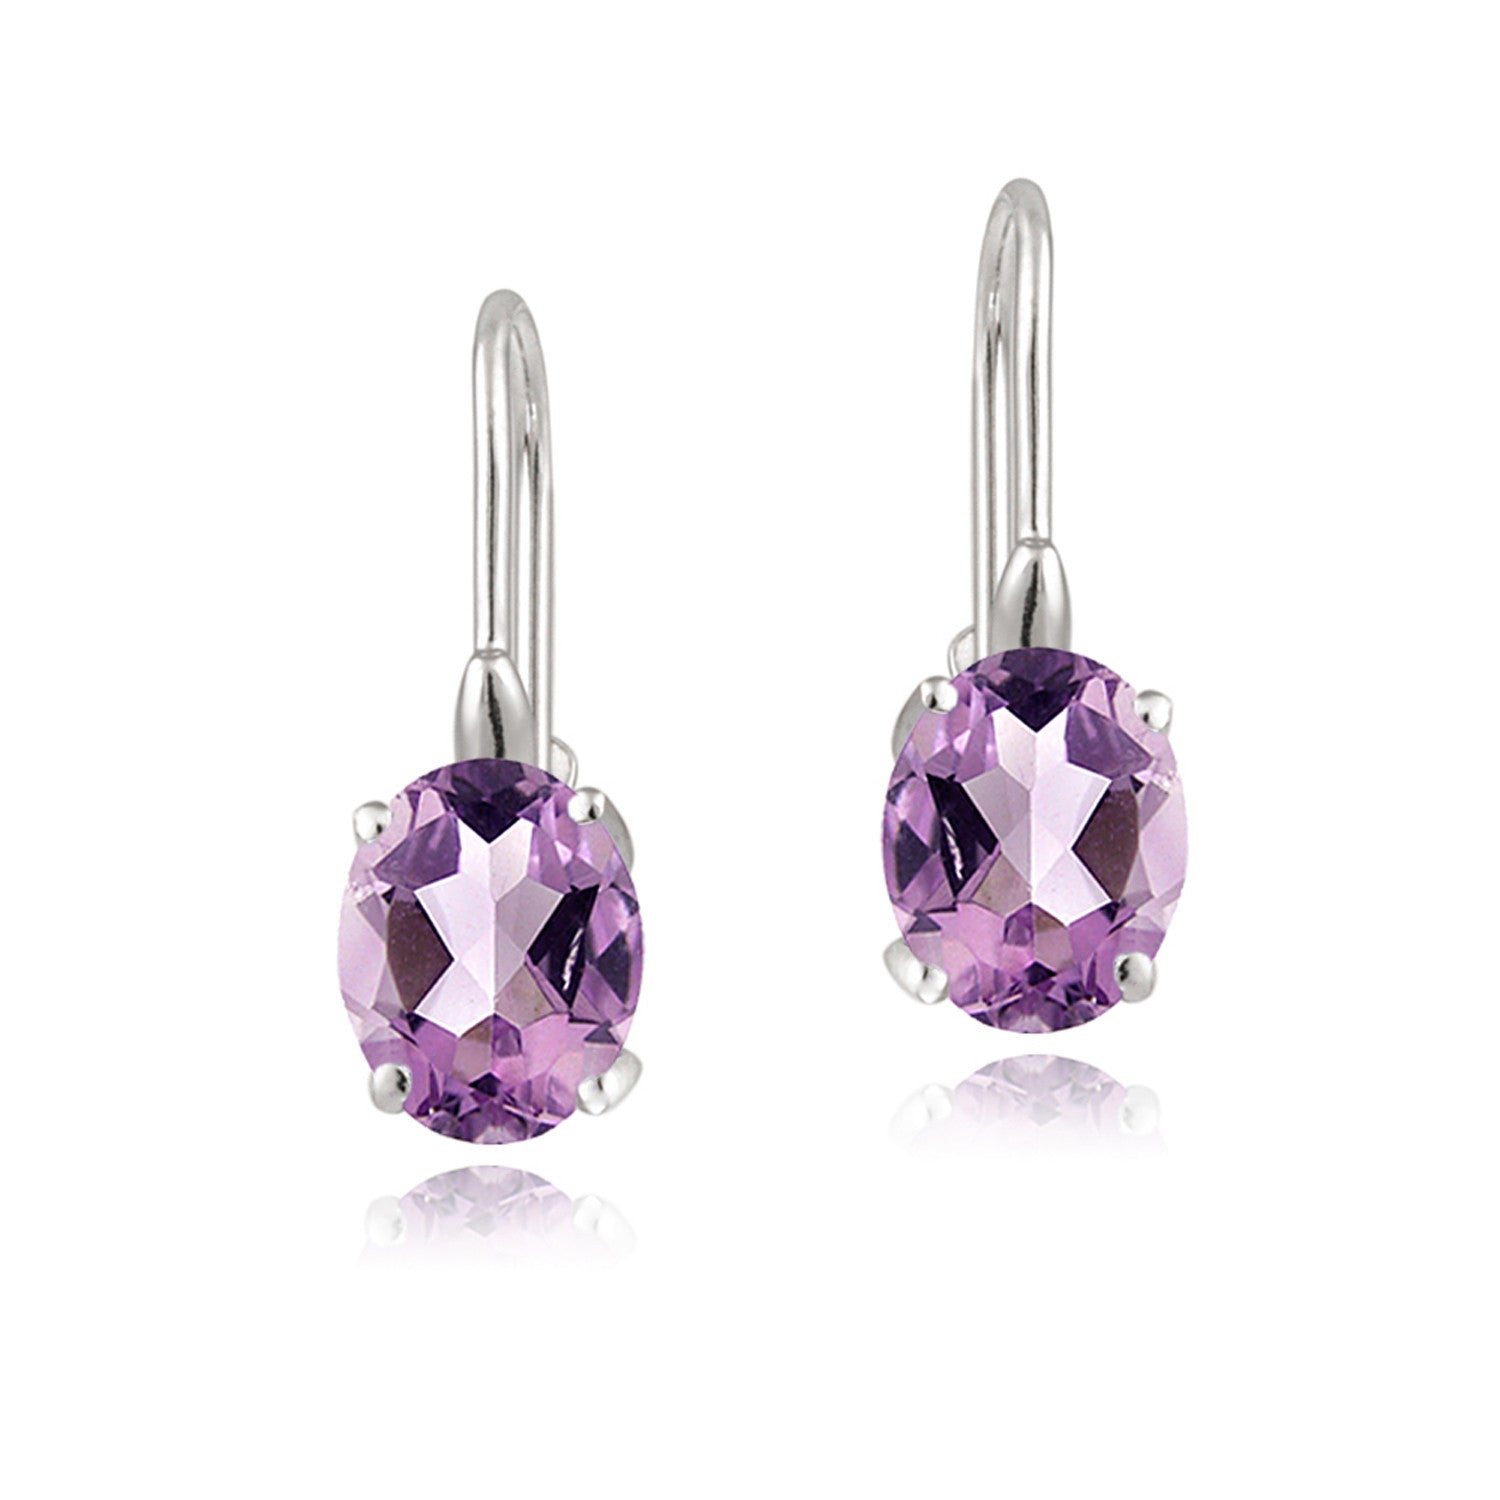 Sterling Silver Oval Cut Birthstone Leverback Dangle Earrings - June Alexandrite